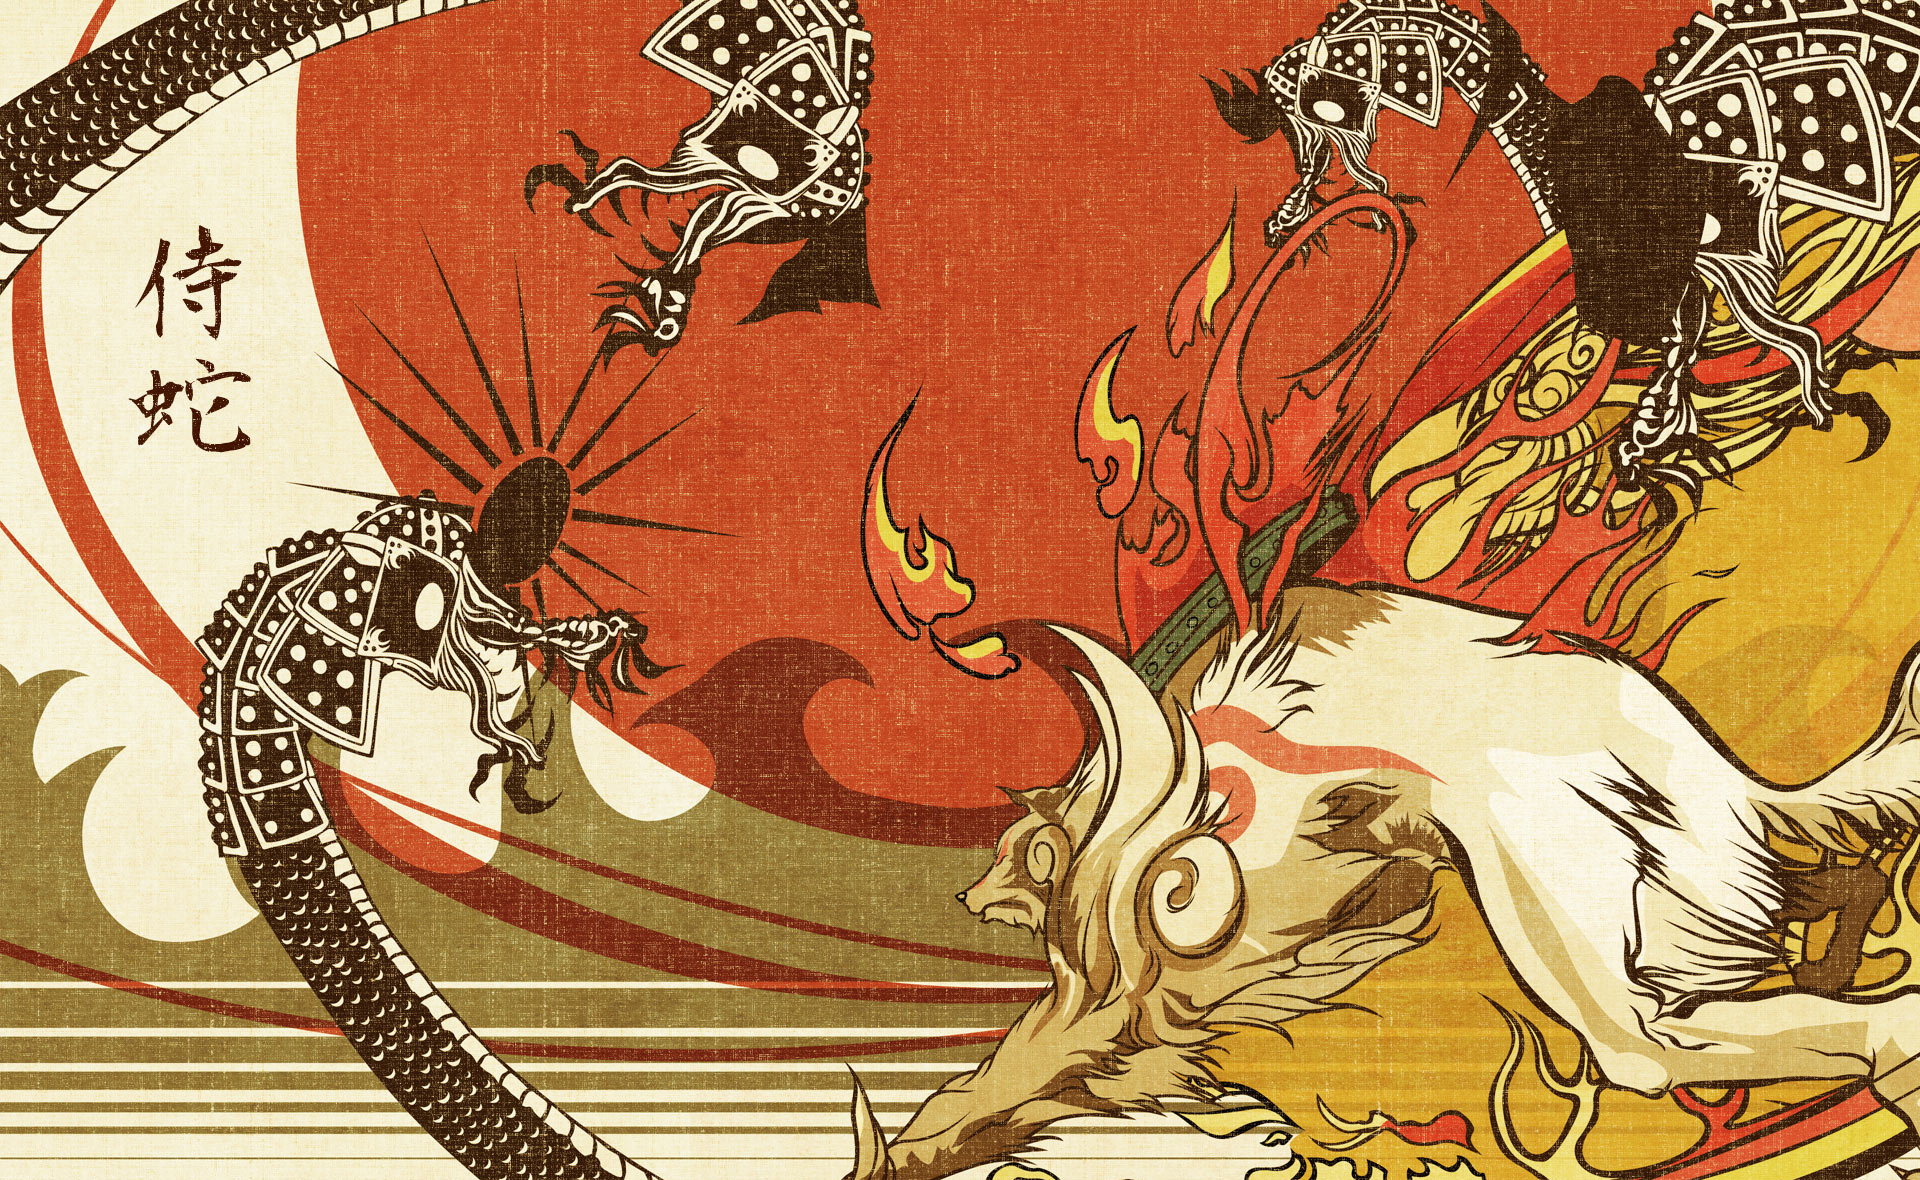 December 17, 2014 - 1920x1180 px Shogun Desktop Wallpapers